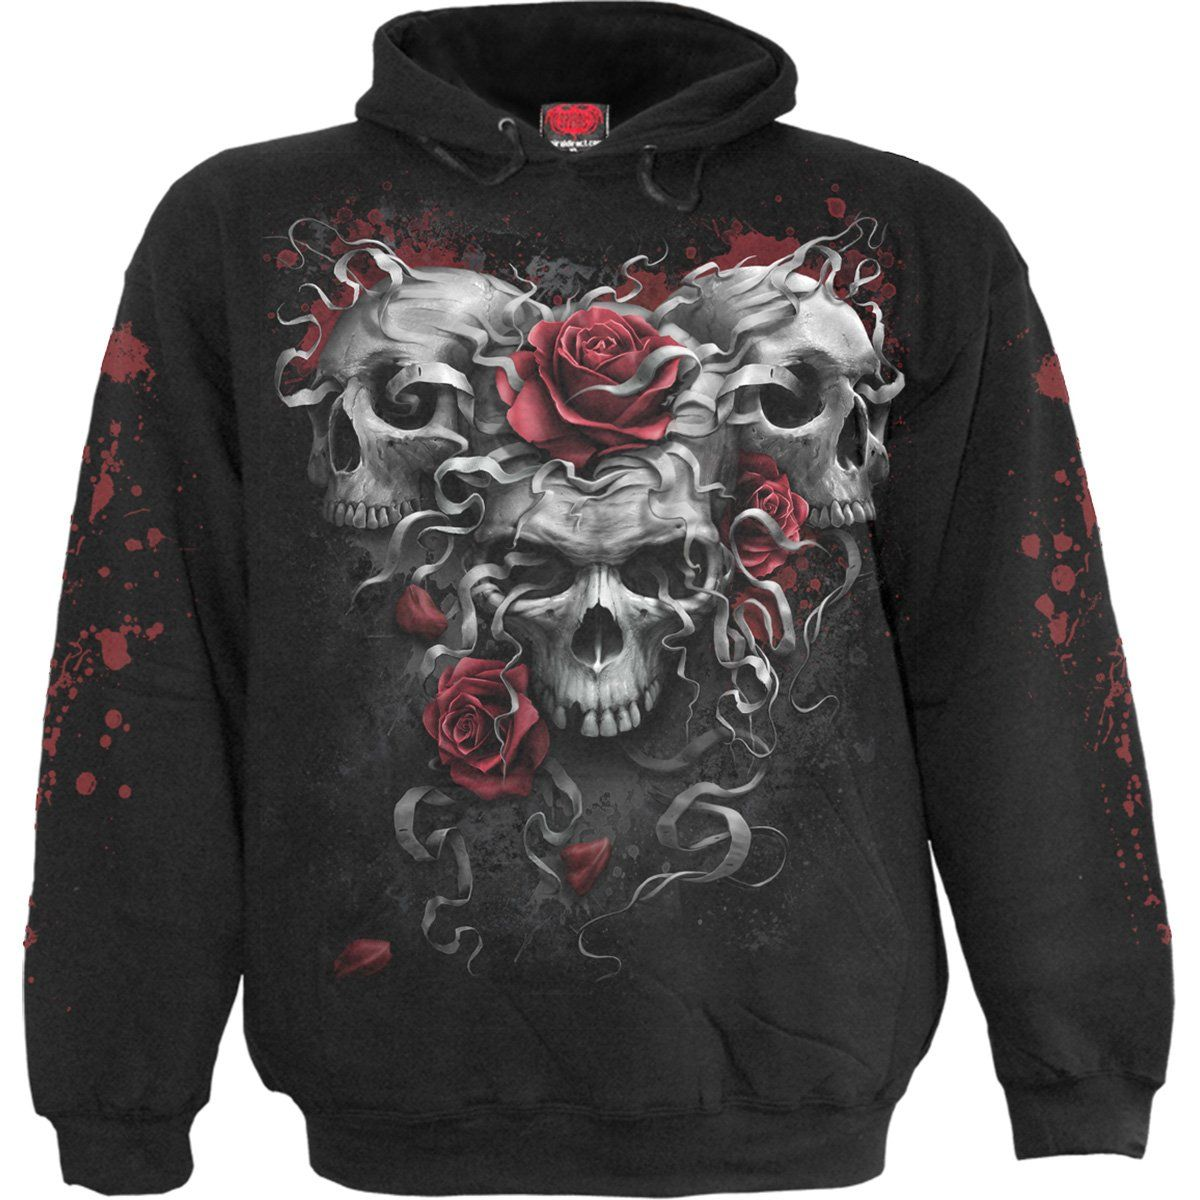 SKULLS N ROSES - Hoody Black in 2019  15575cd3efa